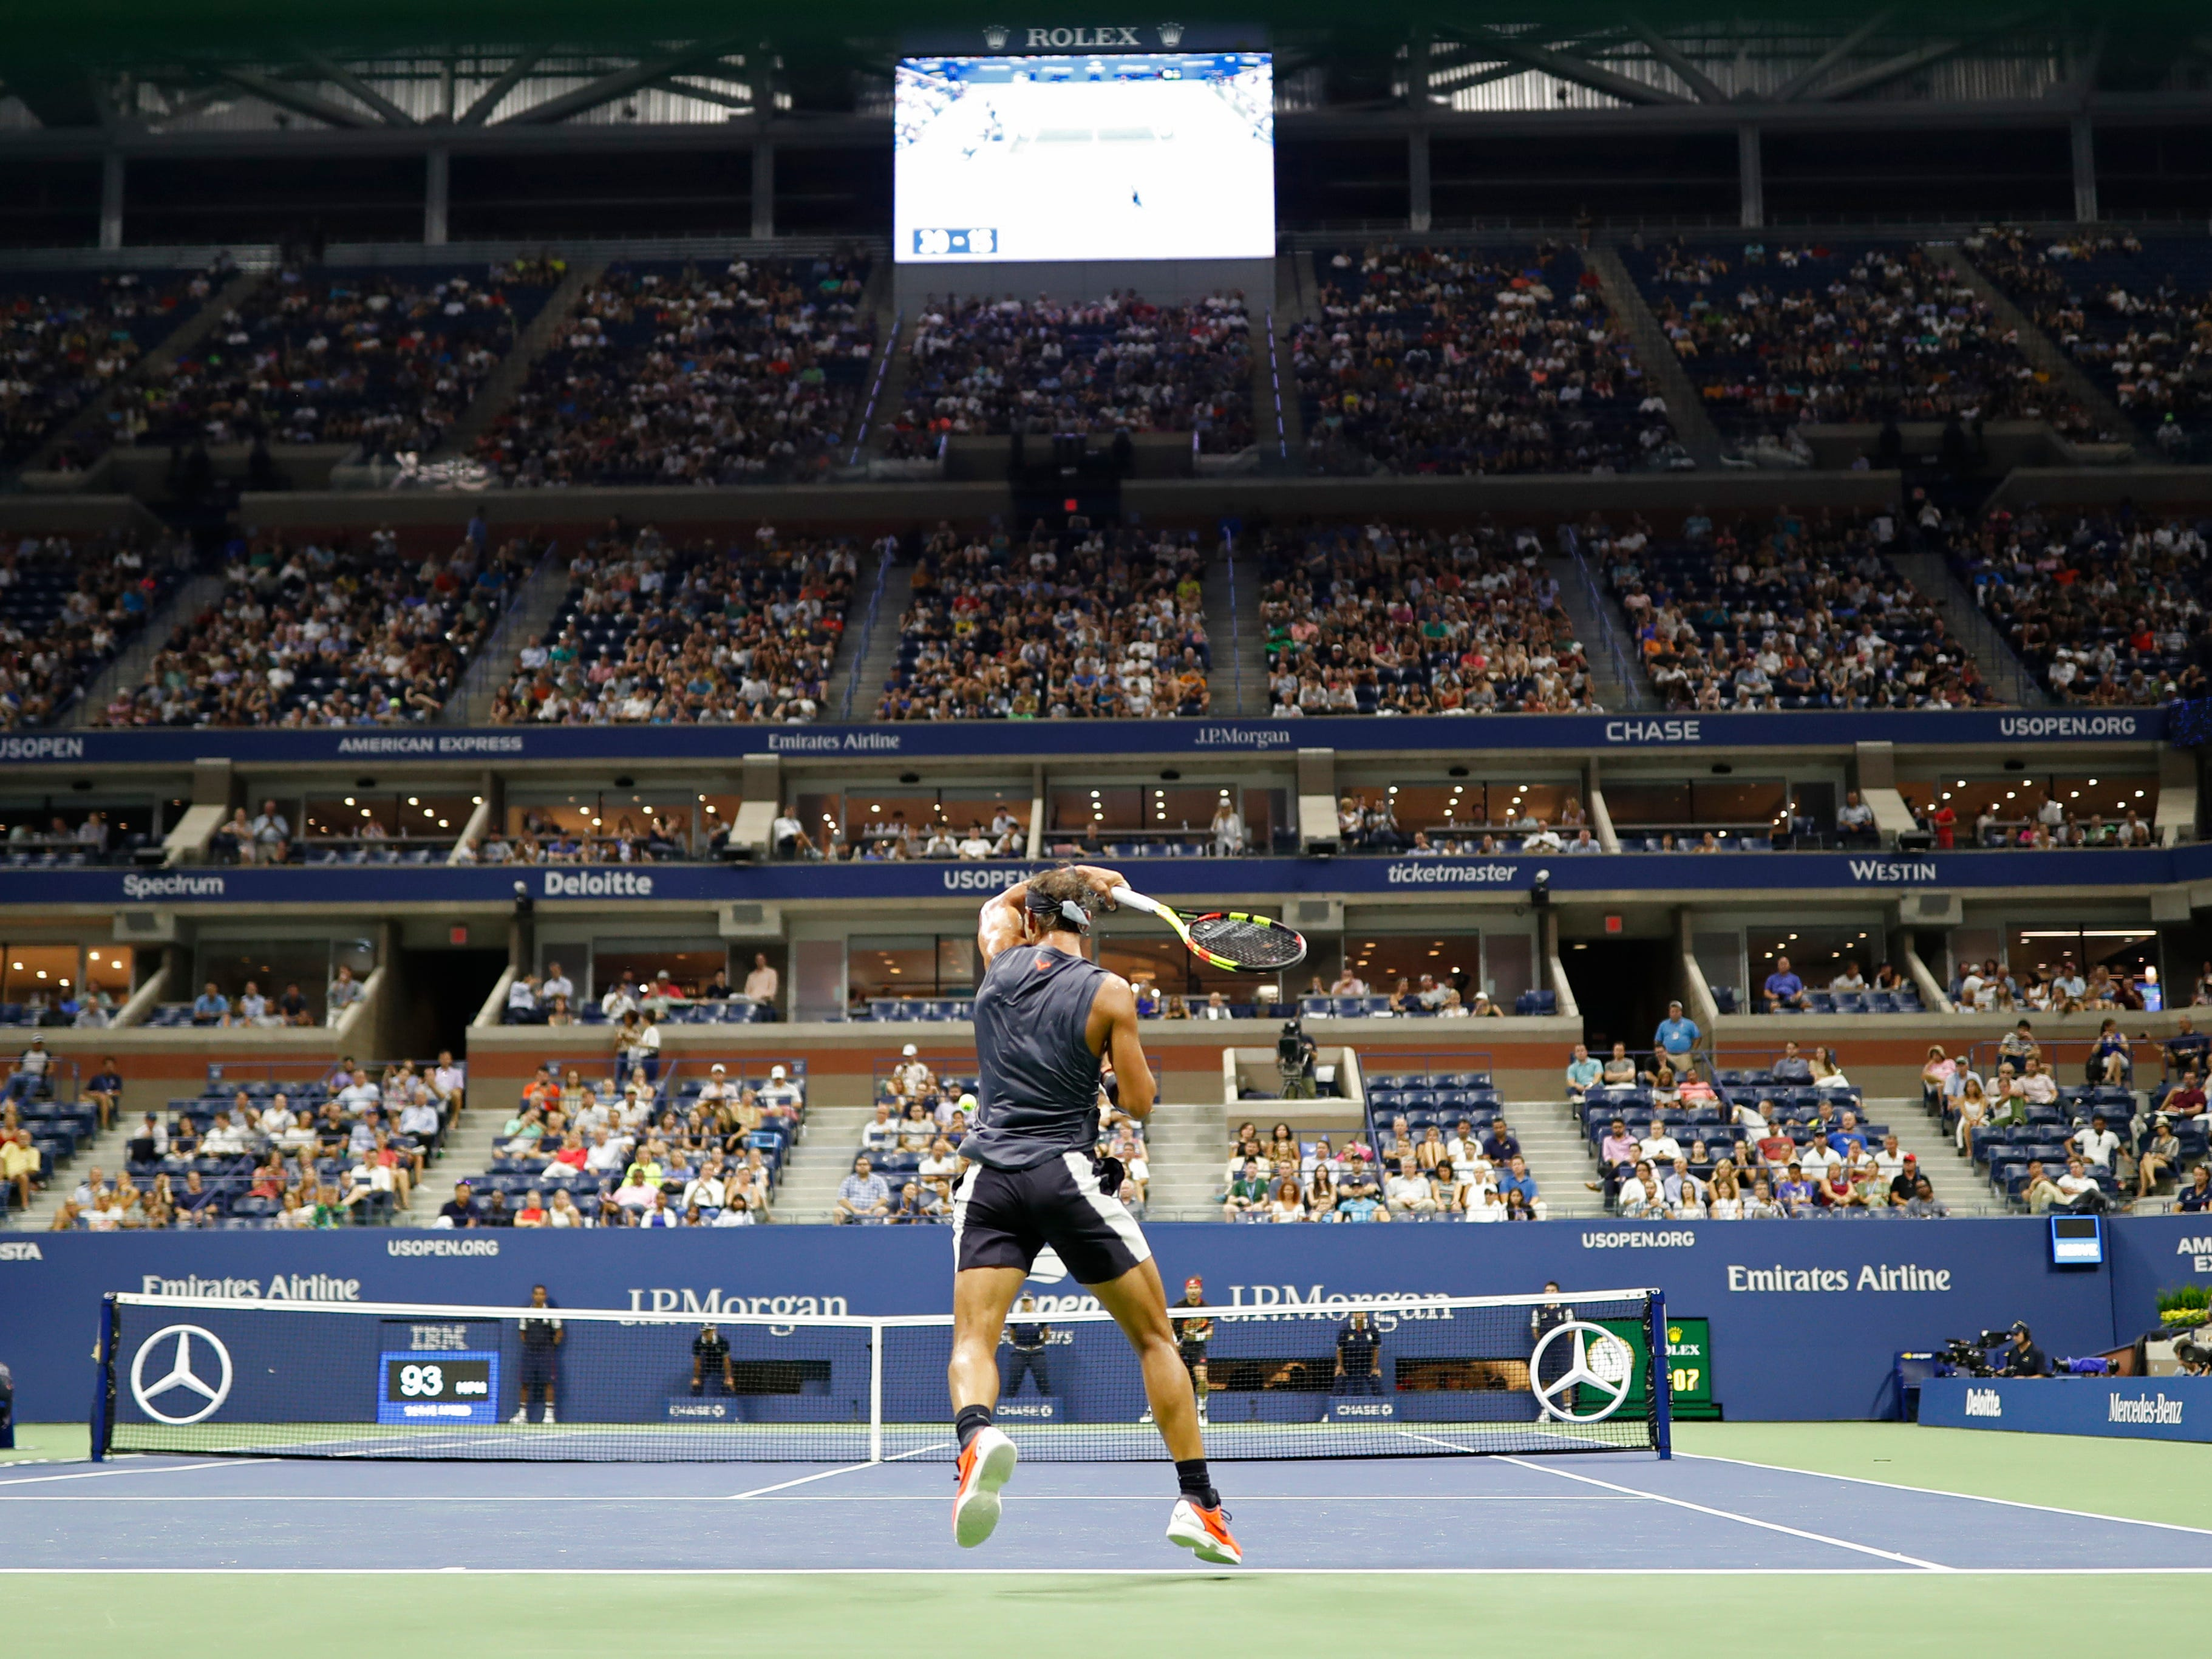 Rafael Nadal of Spain rifles a forehand. Nadal advanced when opponent David Ferrer, playing in his final Grand Slam match, retired with an injury in the second set.